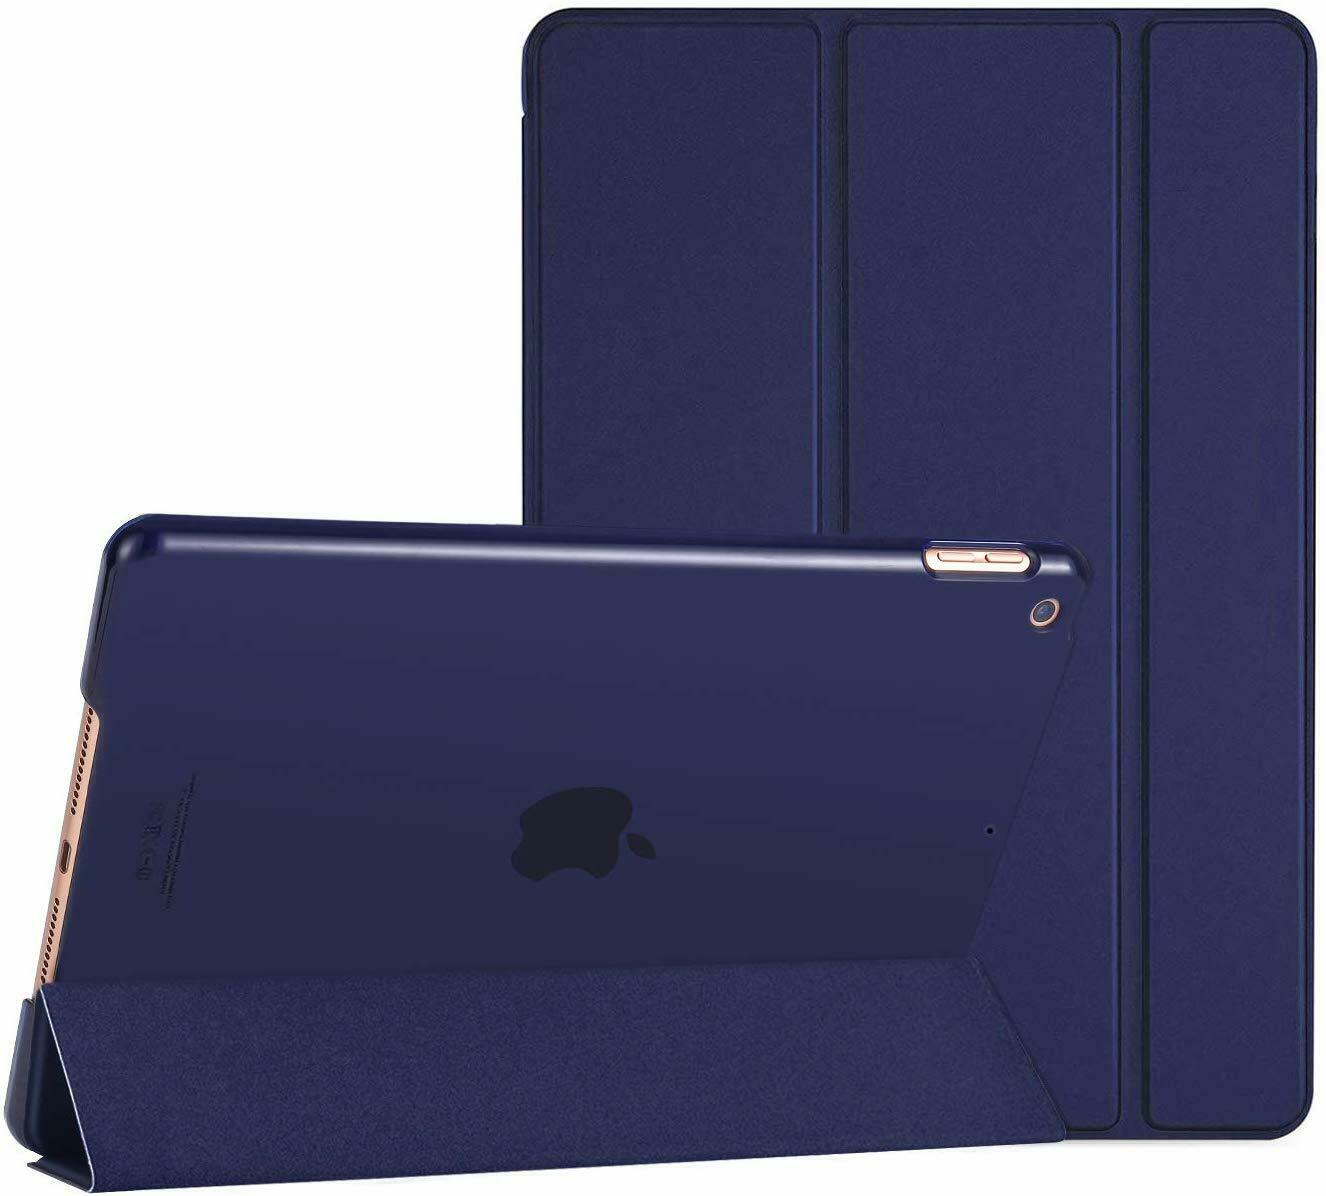 Protective Cover Case for Apple iPad 7th Gen 10.2 inches (Brand New)